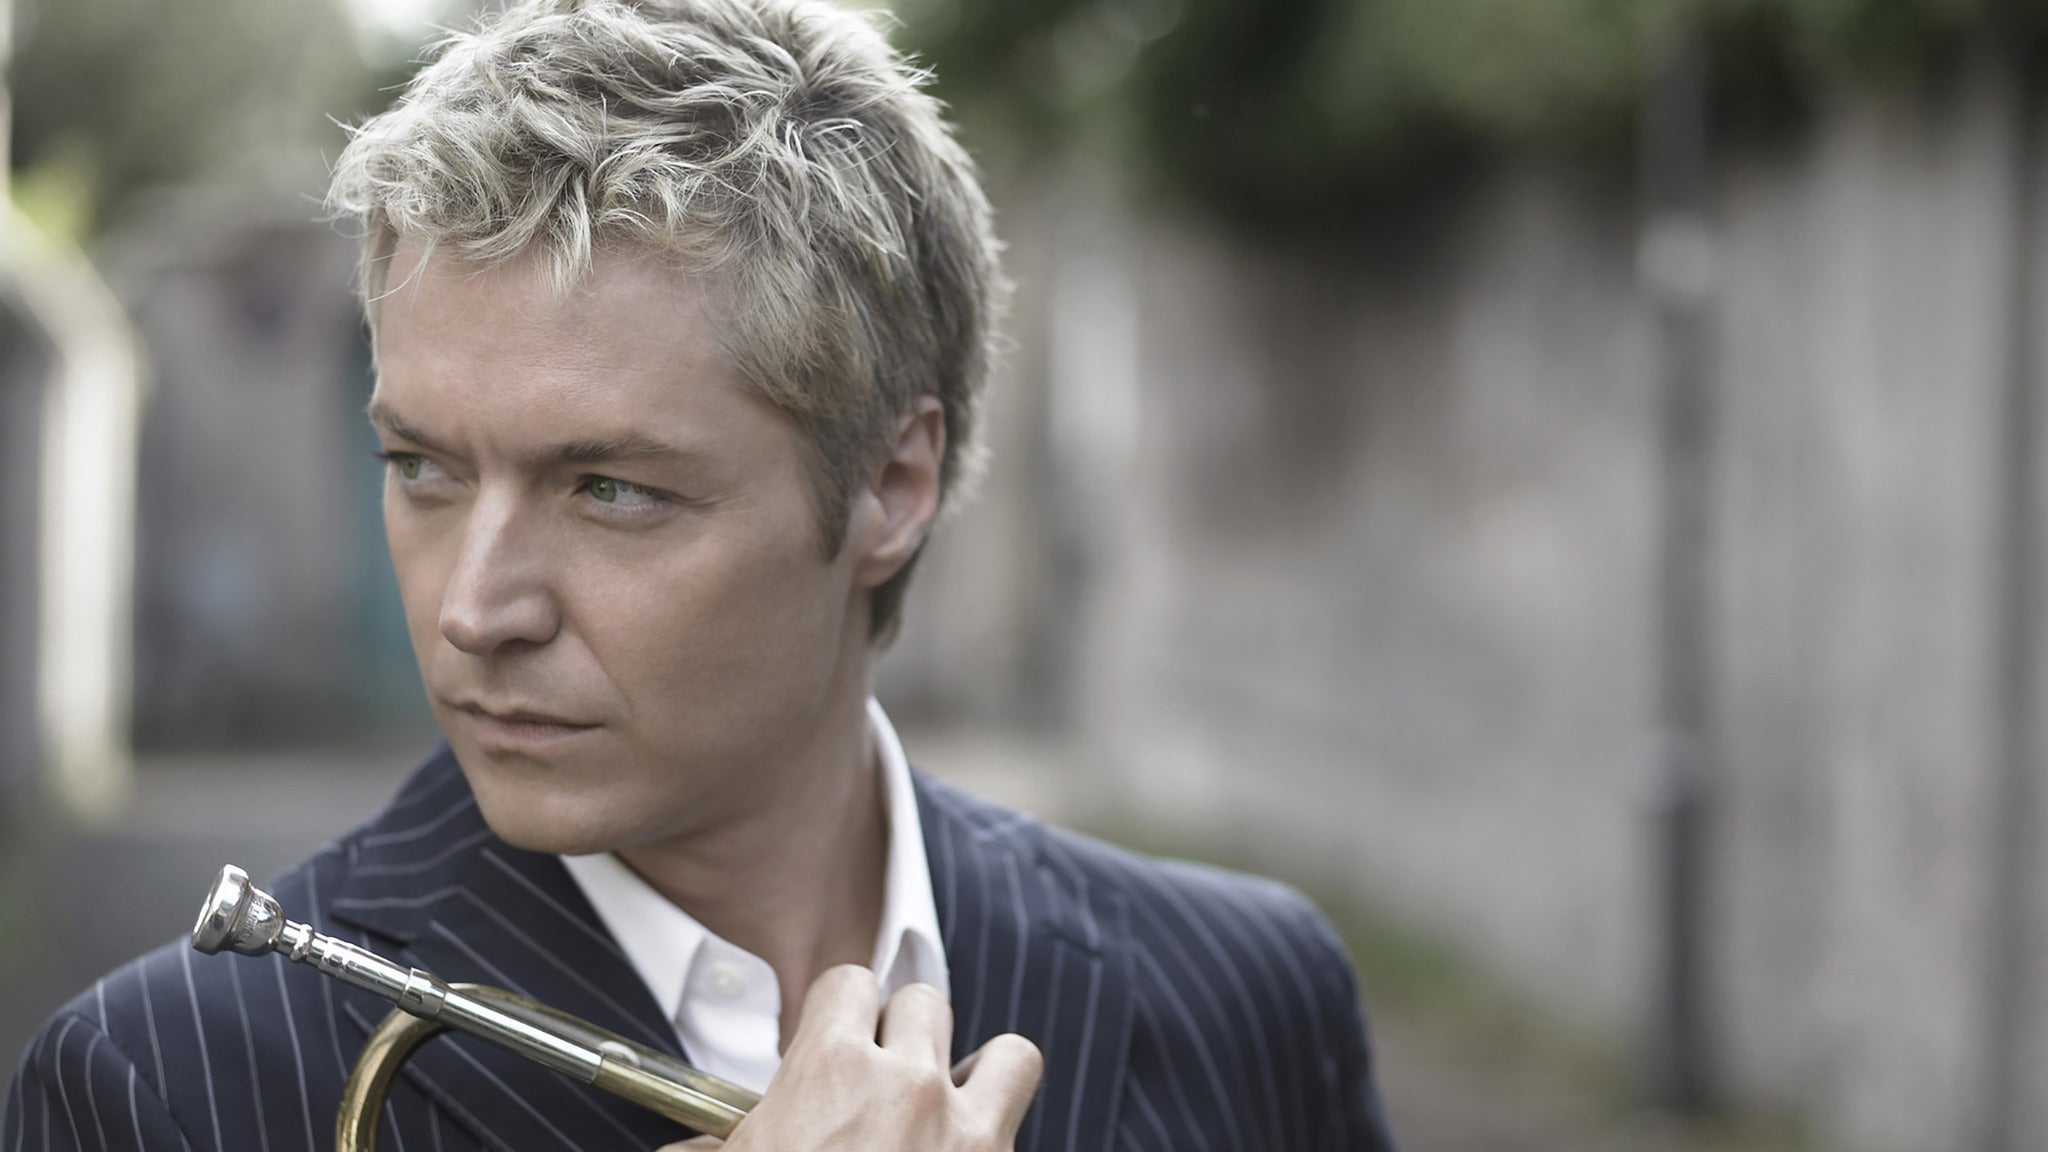 Chris Botti at Uptown Theatre Napa - Napa, CA 94559